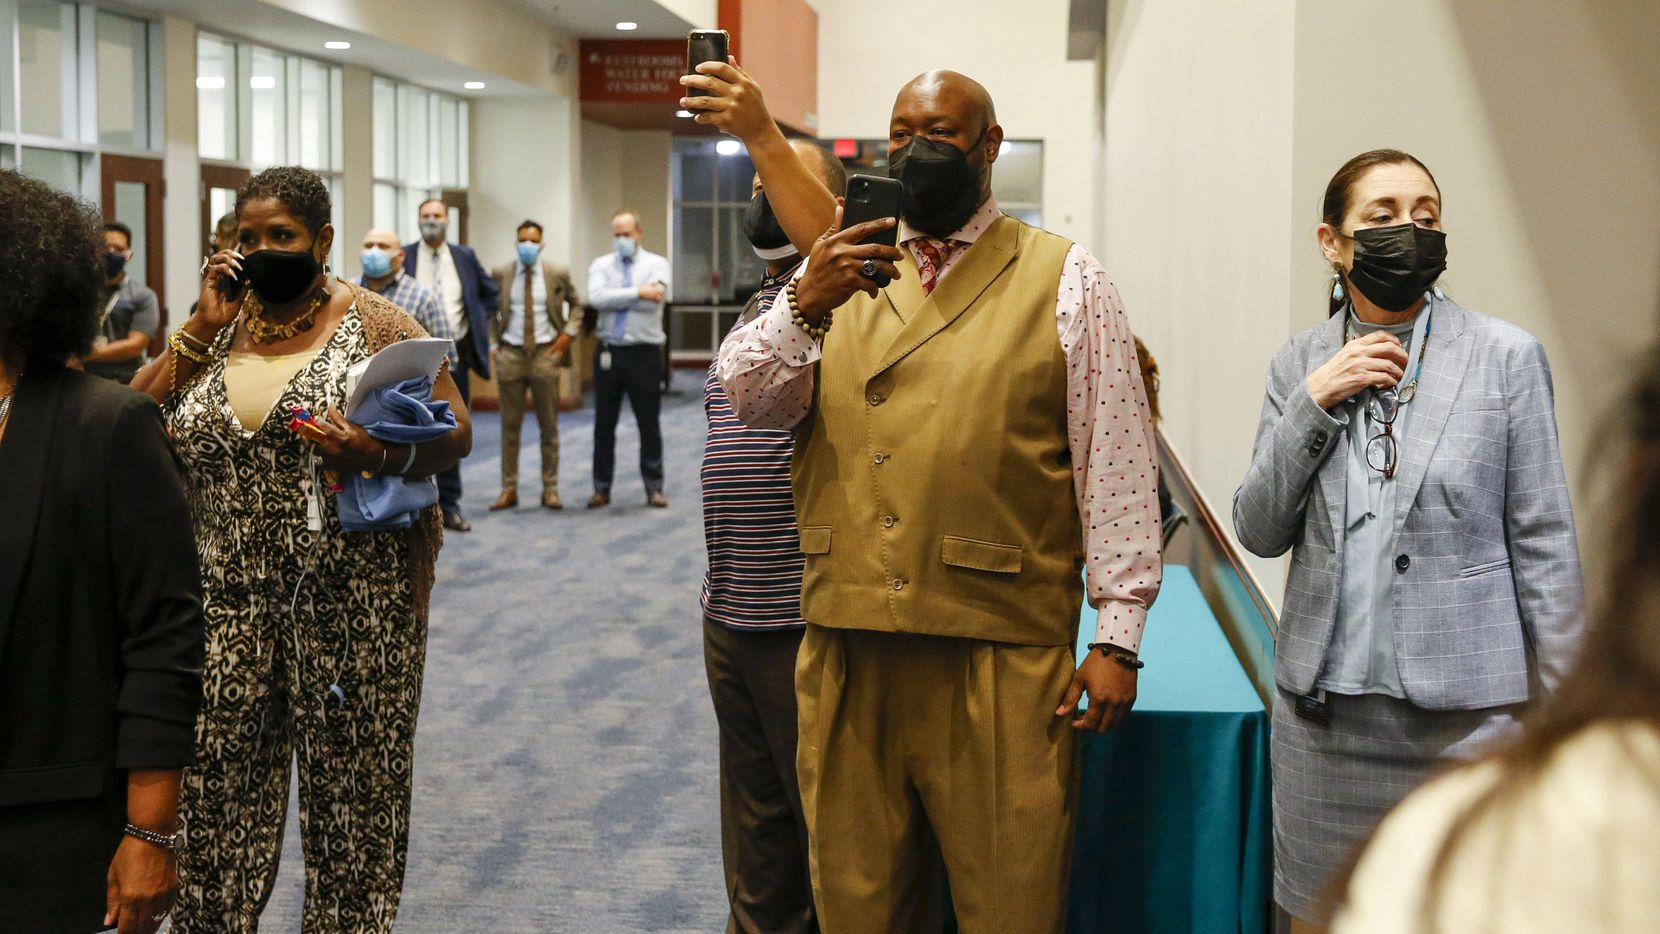 Dallas ISD school board member Maxie Johnson (center) and DISD employees record opponents of mask mandates during a Dallas ISD school board meeting on Aug. 26, 2021, in Dallas.